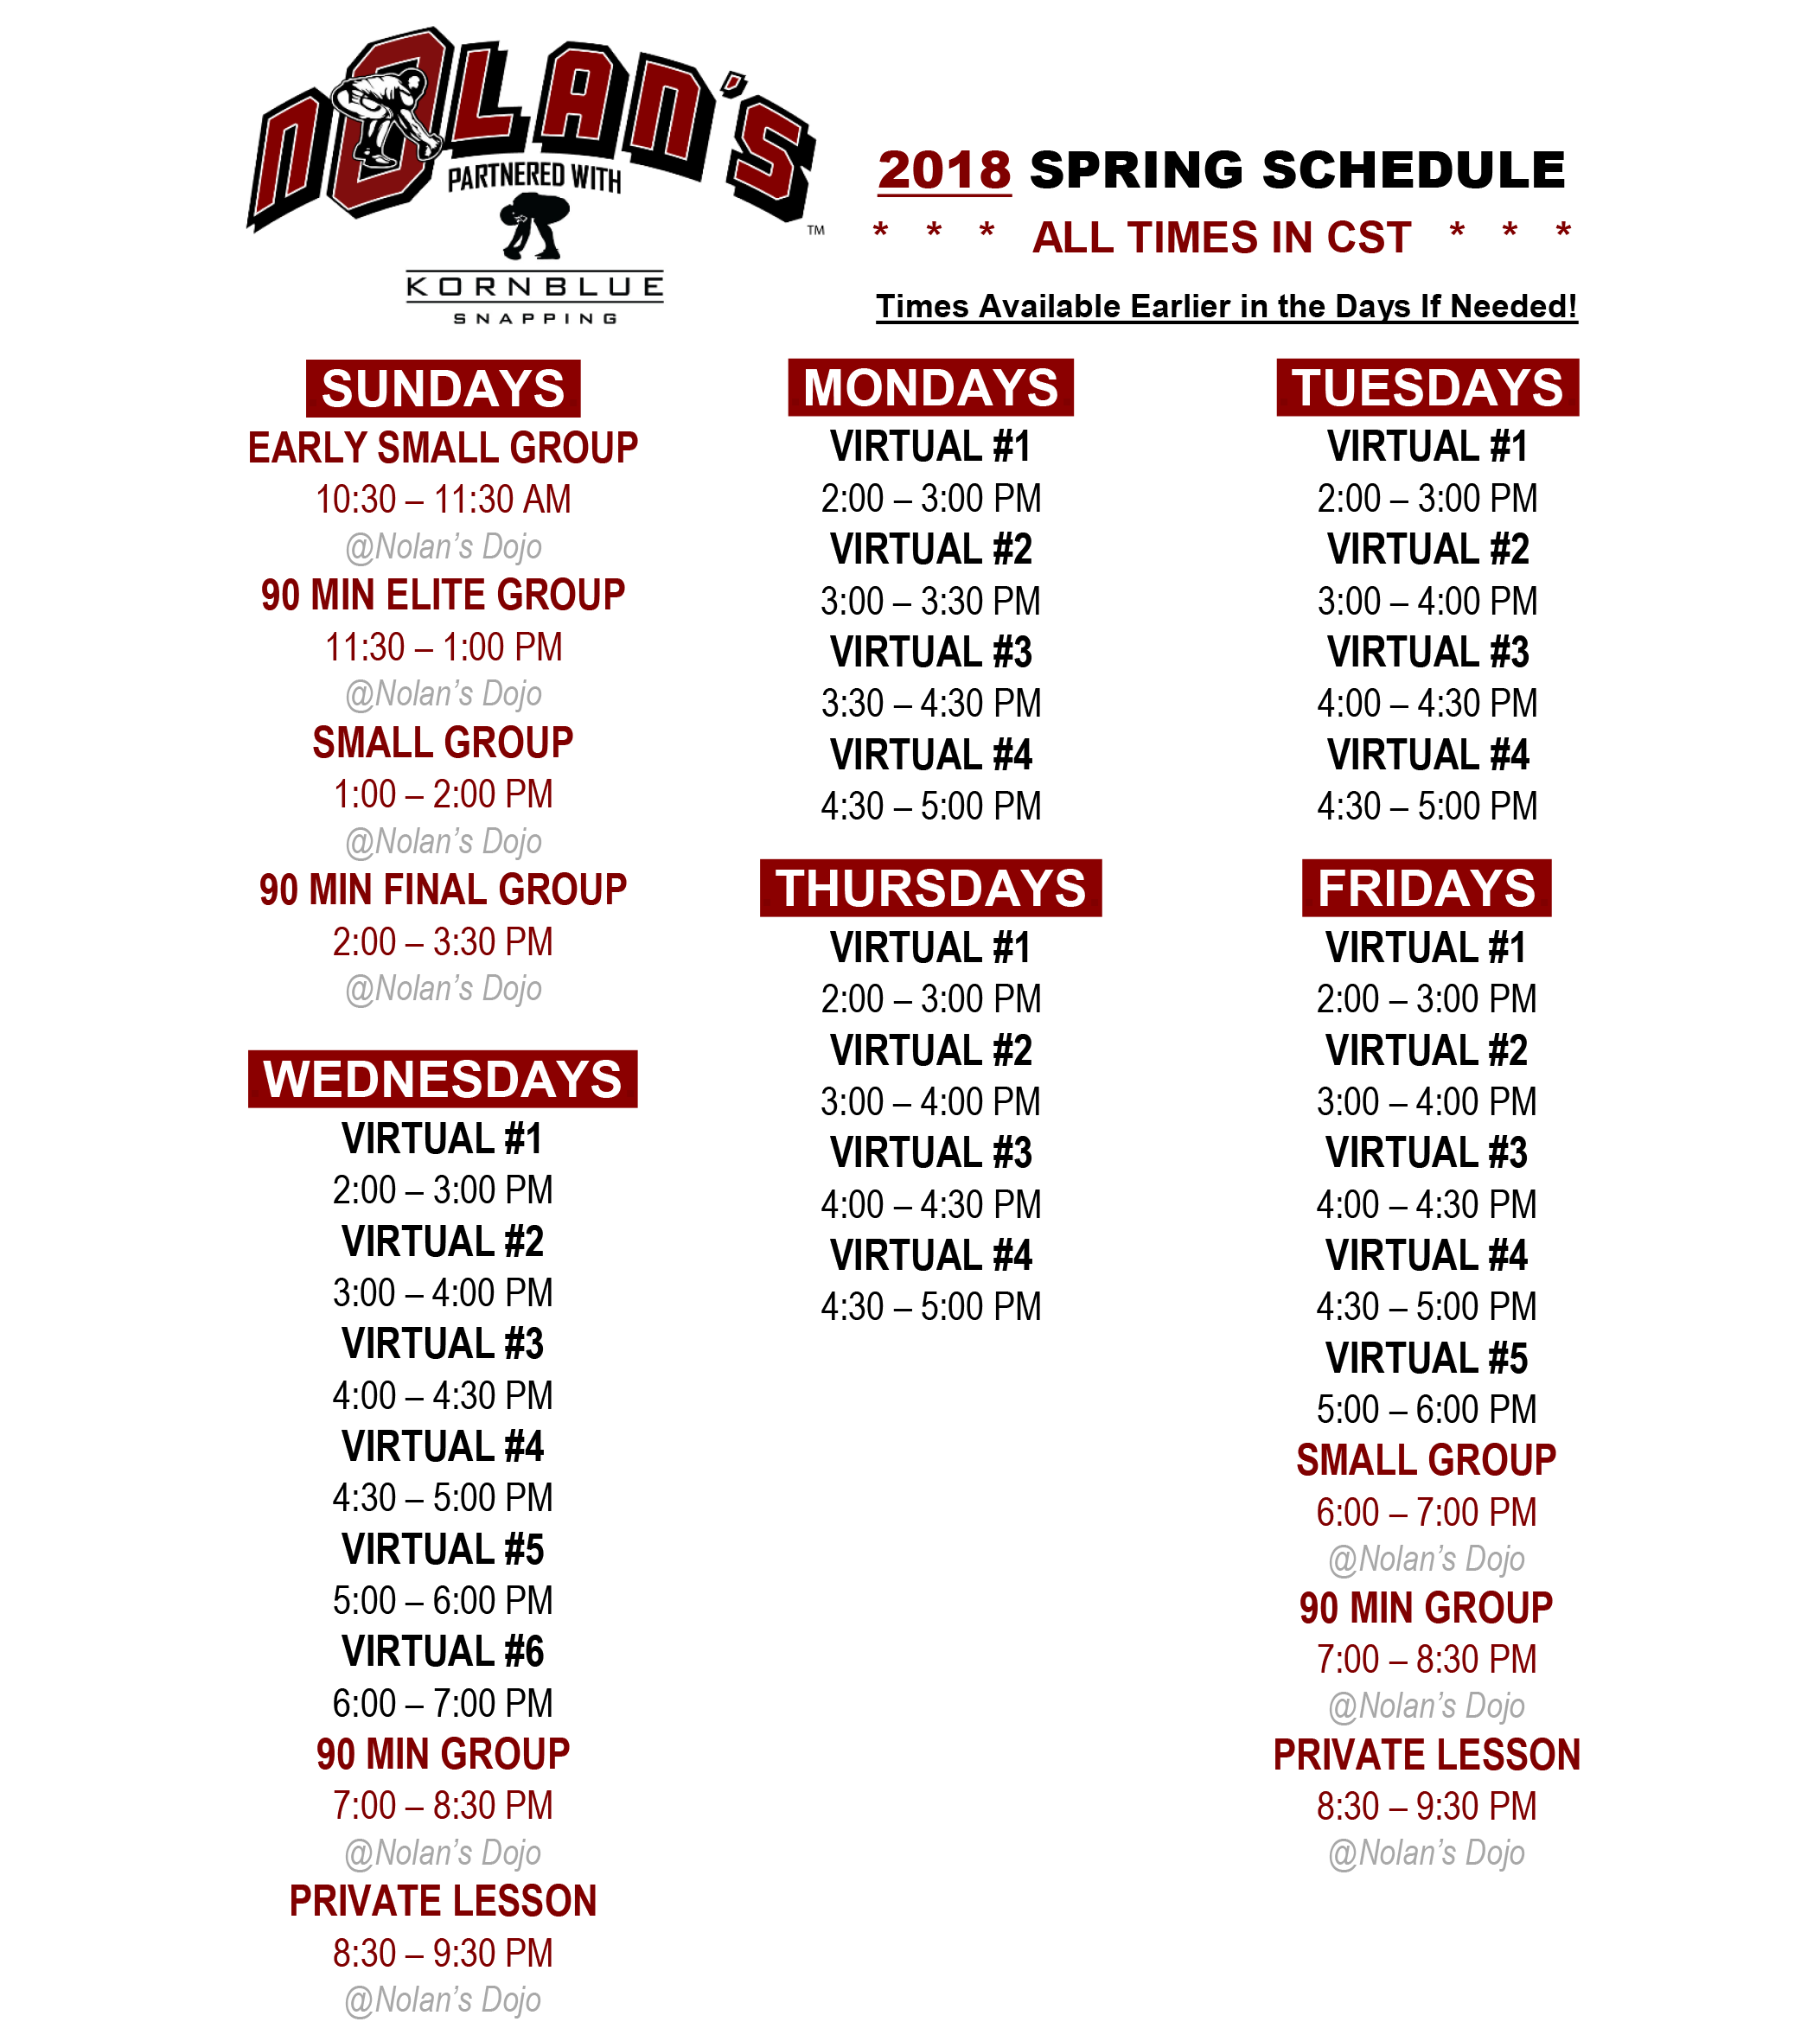 2018-NOLAN'S-LONG-SNAPPING-SPRING-SCHEDULE.png